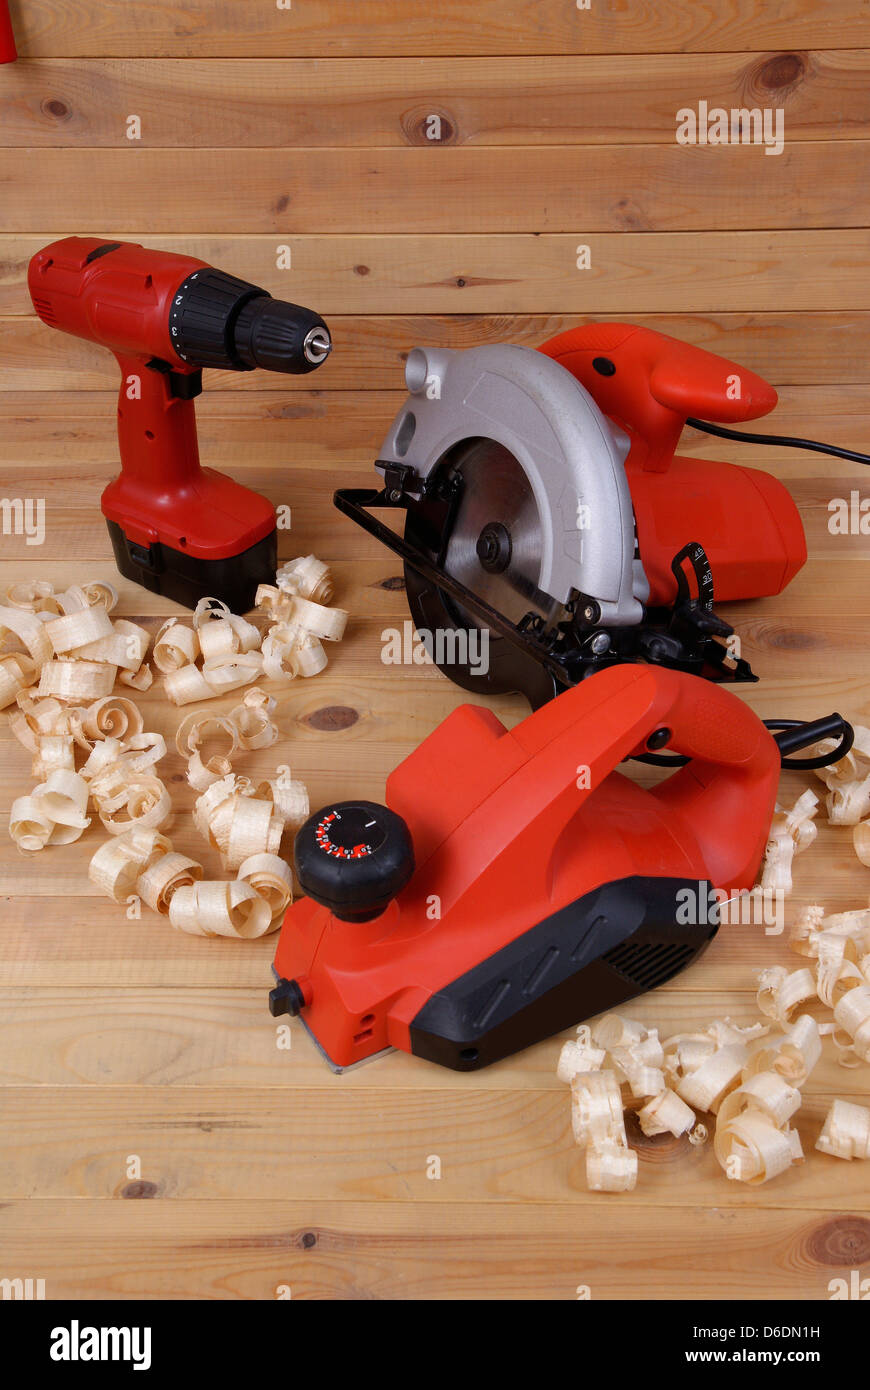 three types electric instruments and shaving woods on table - Stock Image